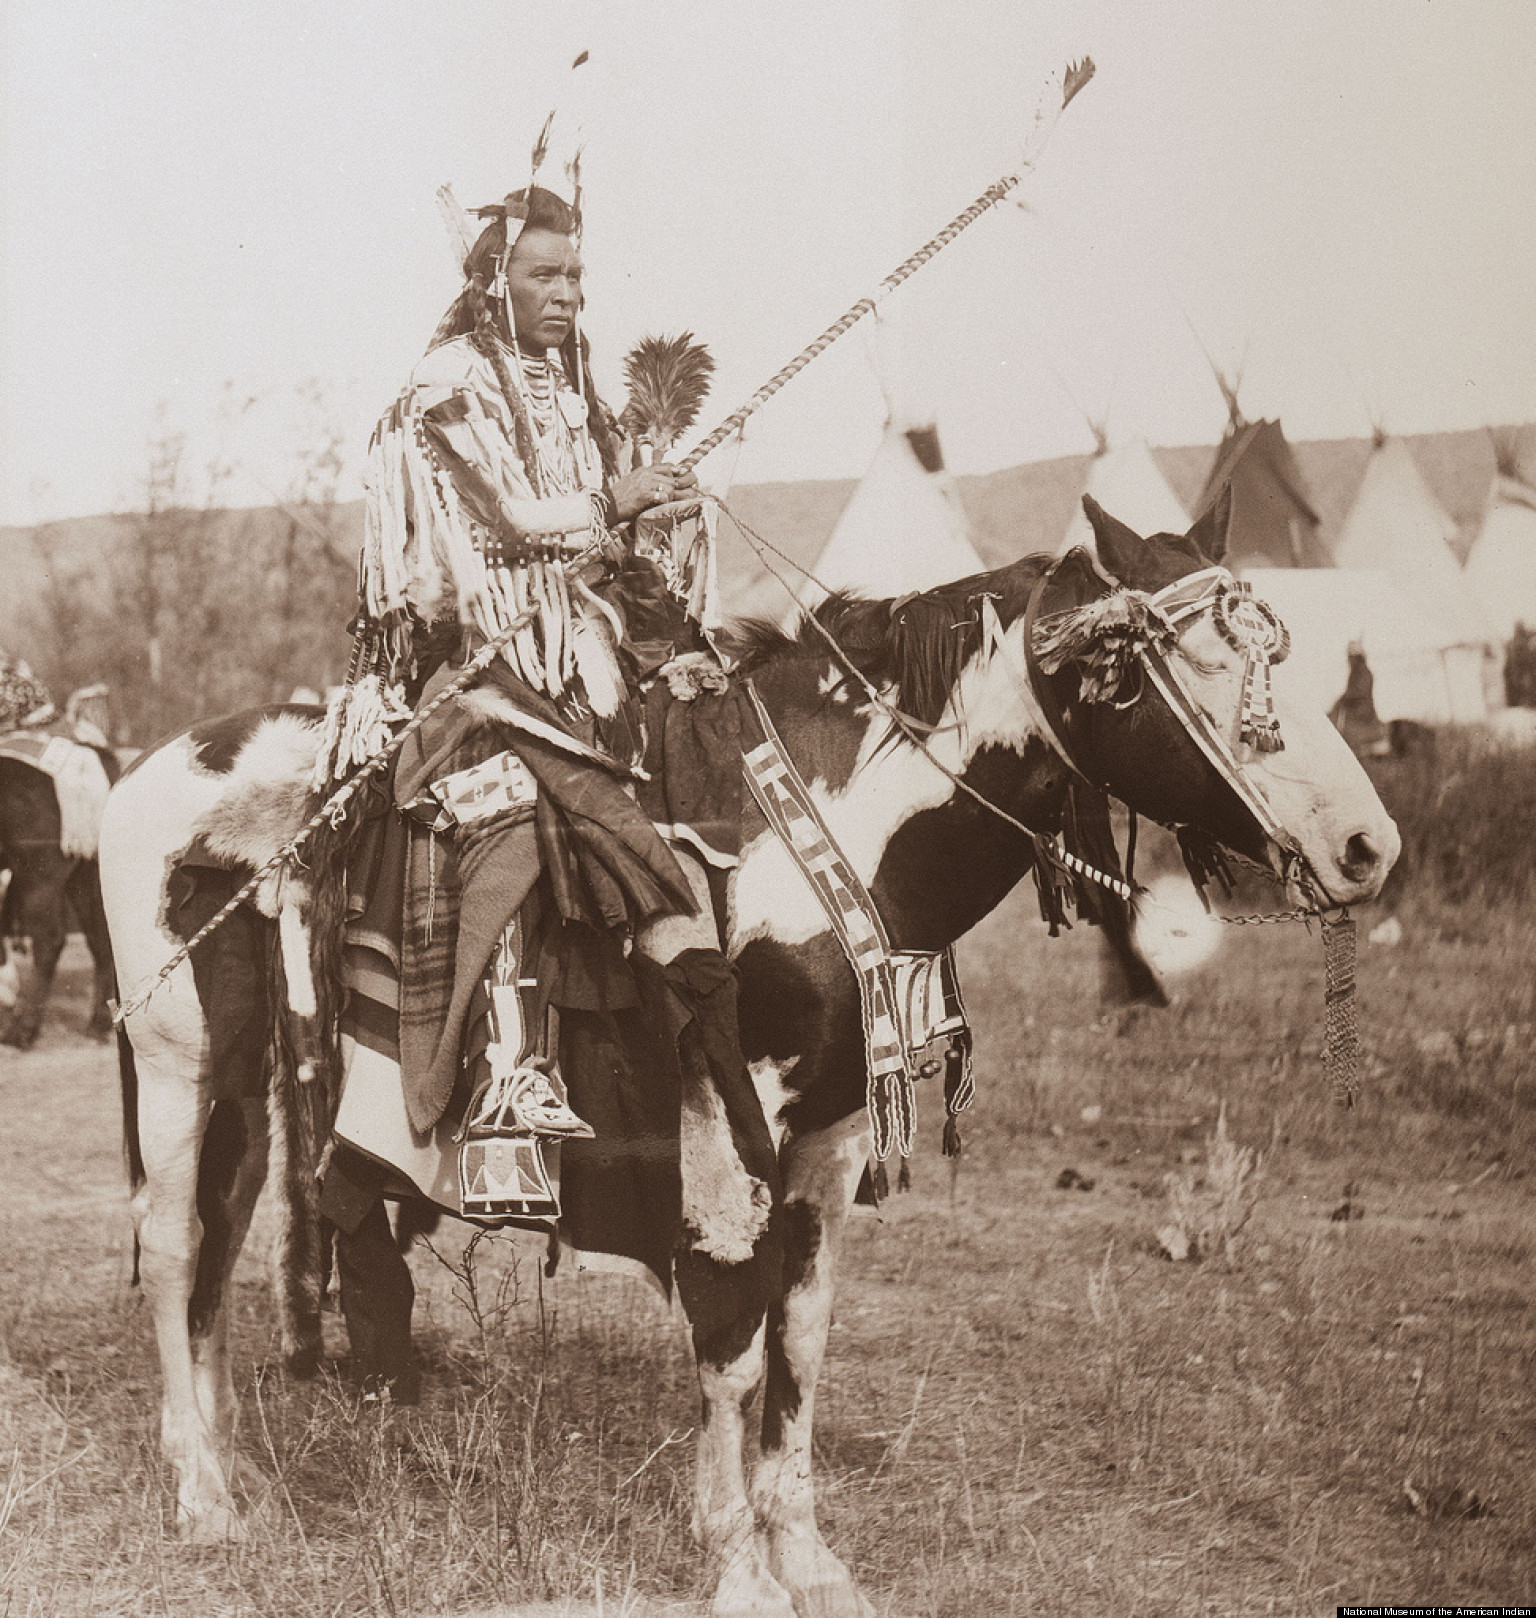 a review of the chippewa and lakota treaties in america These treaties guaranteed the self-determination and territorial rights of the lakota nation the us government violated the treaties before the ink was dried, and still today refuses to respect the lakotas' right to self-determination, and the sovereignty of their territory.